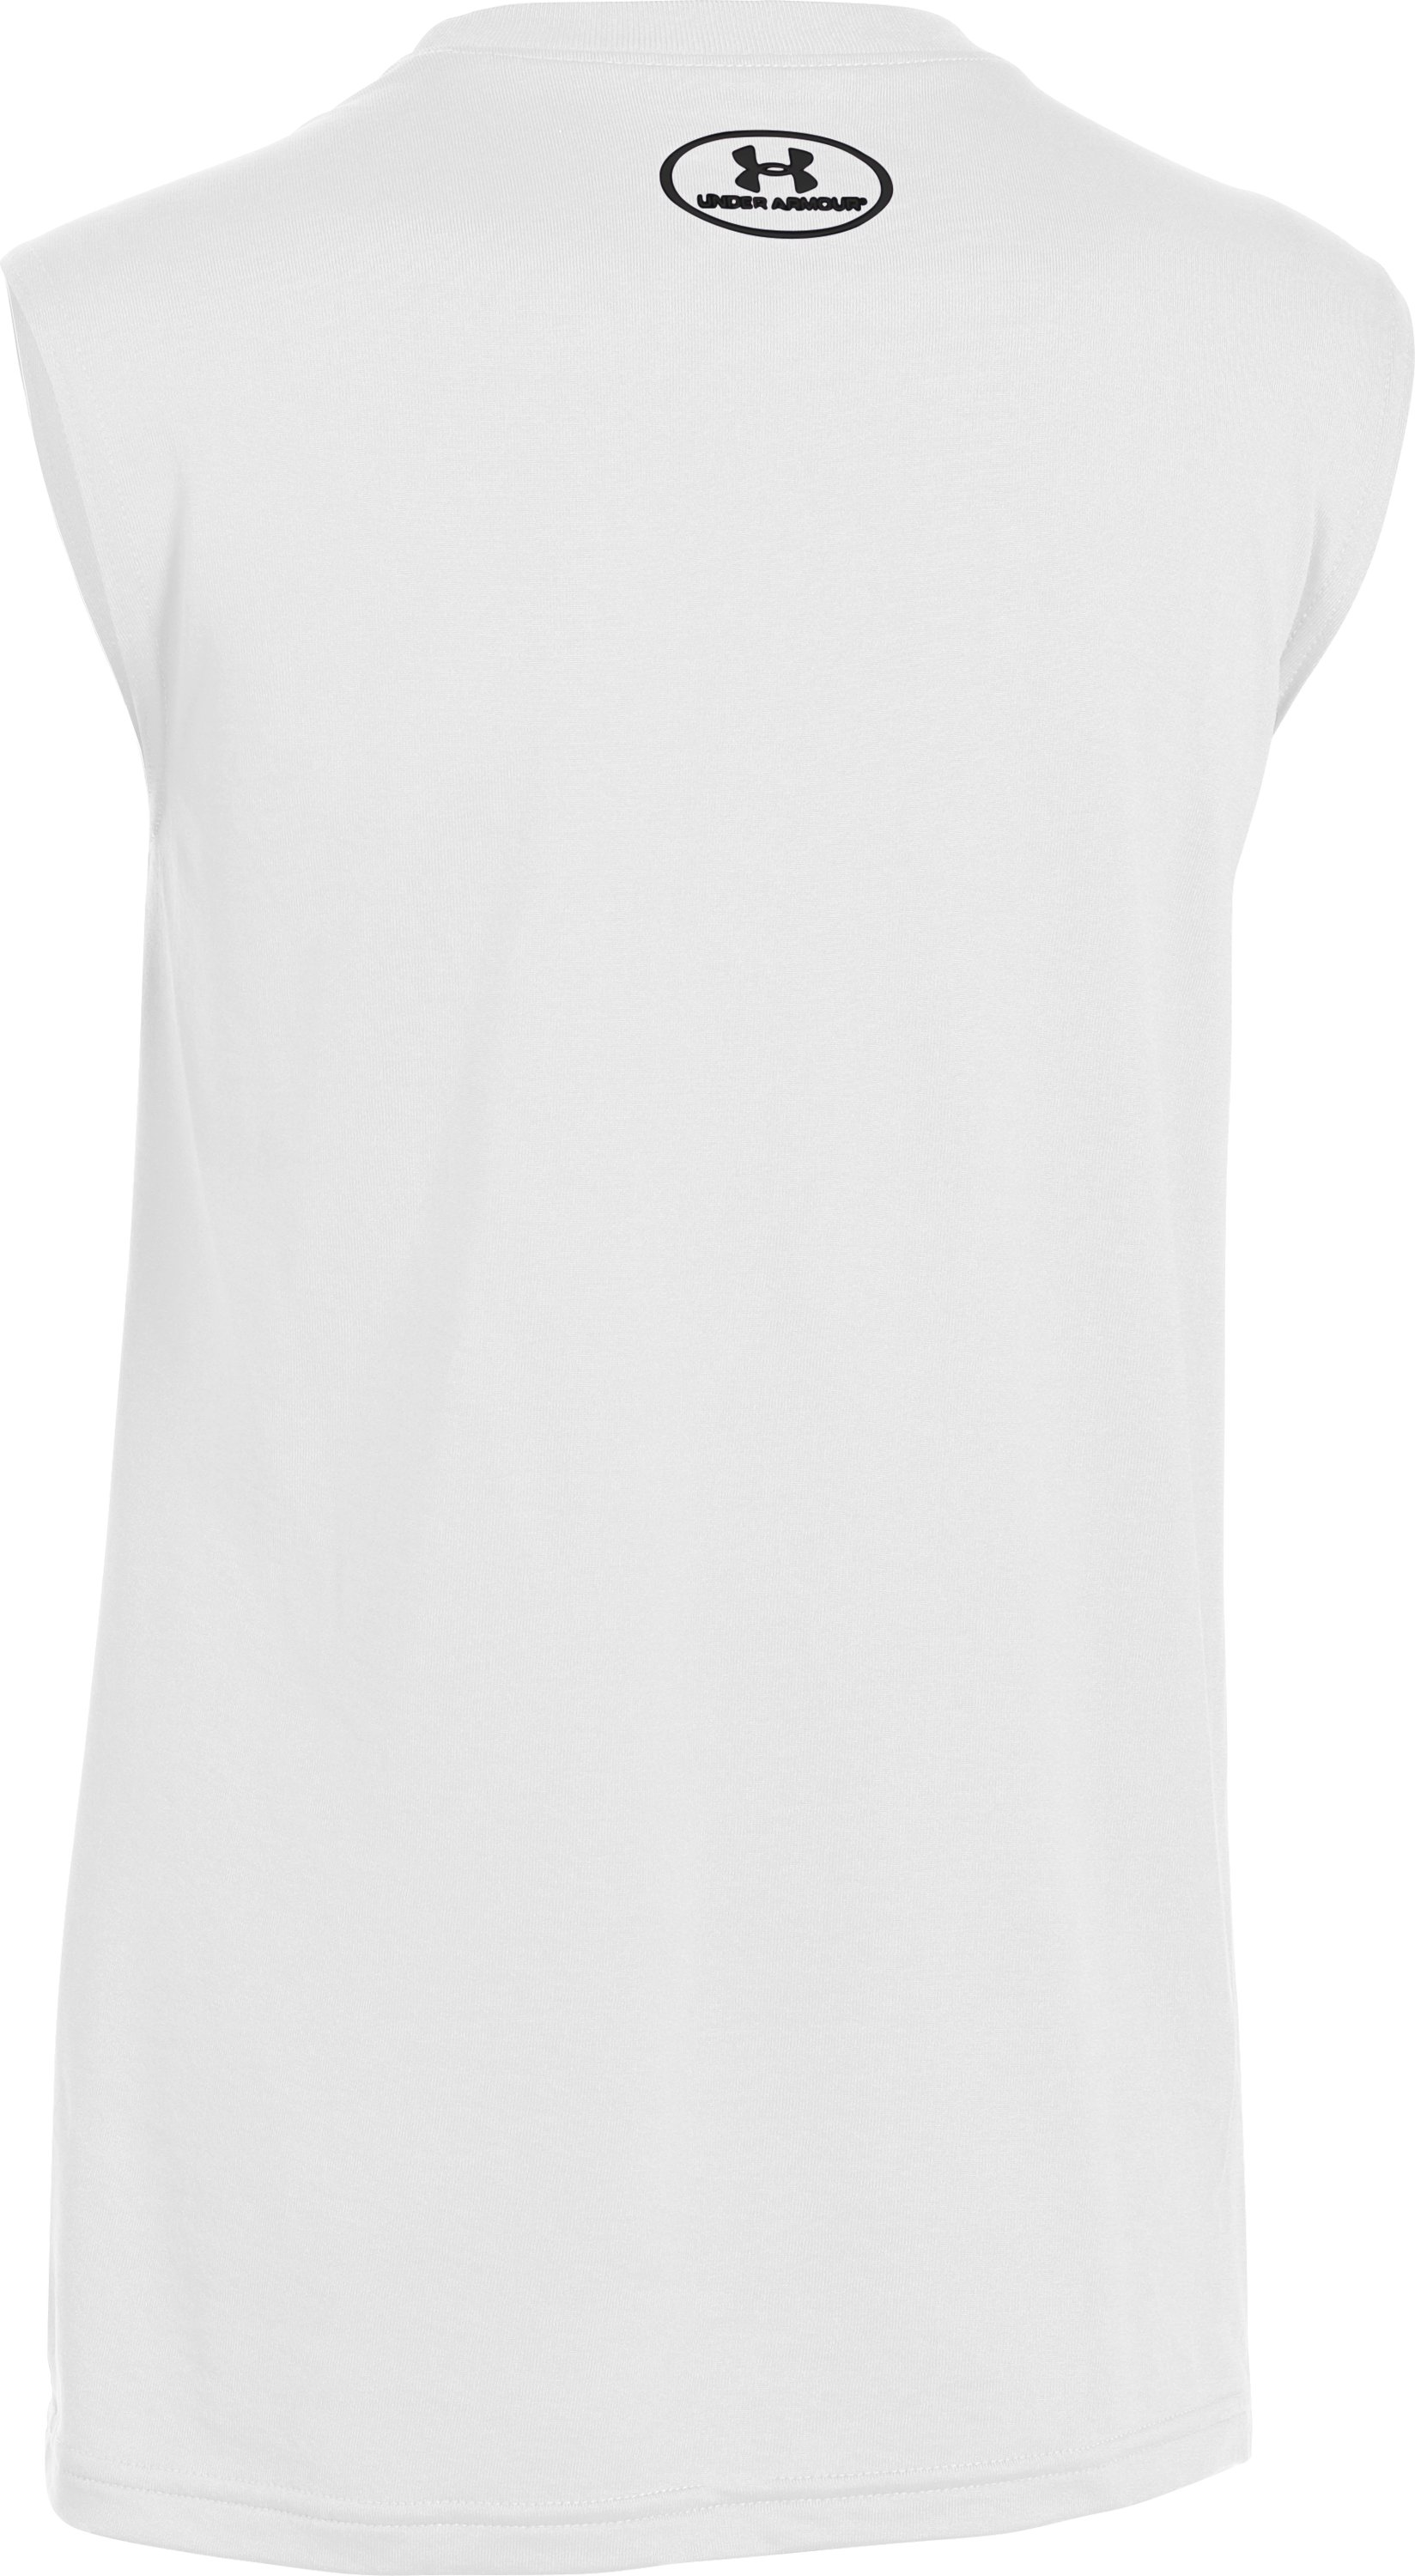 Boys' UA Tech™ Big Logo Sleeveless T-Shirt, White